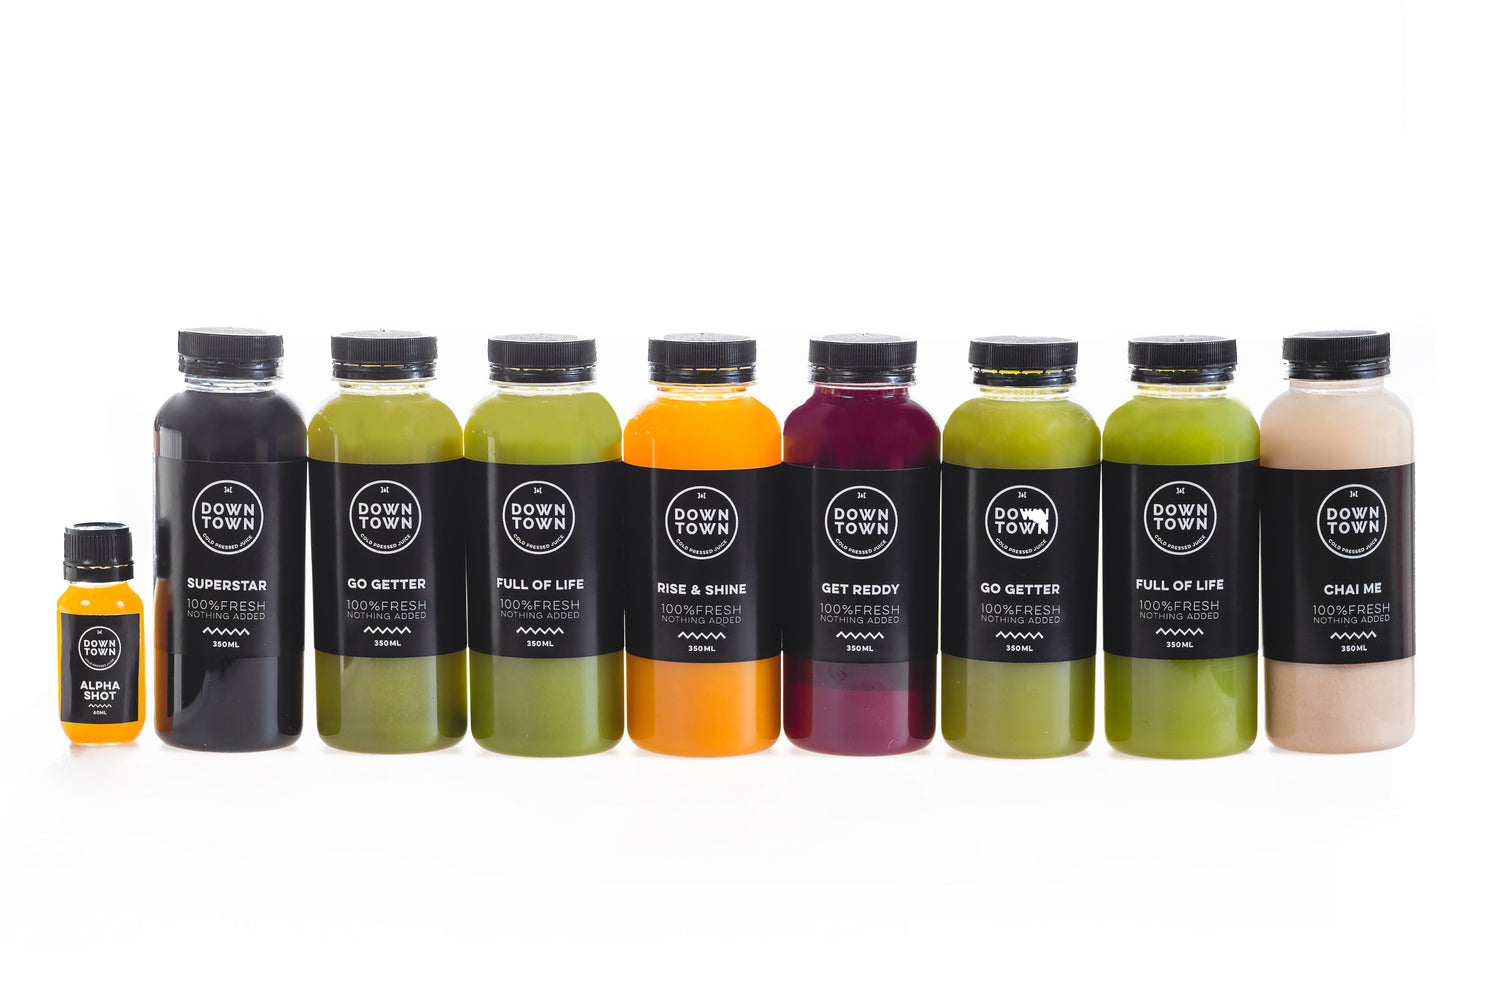 'THE BRONX' JUICE CLEANSE